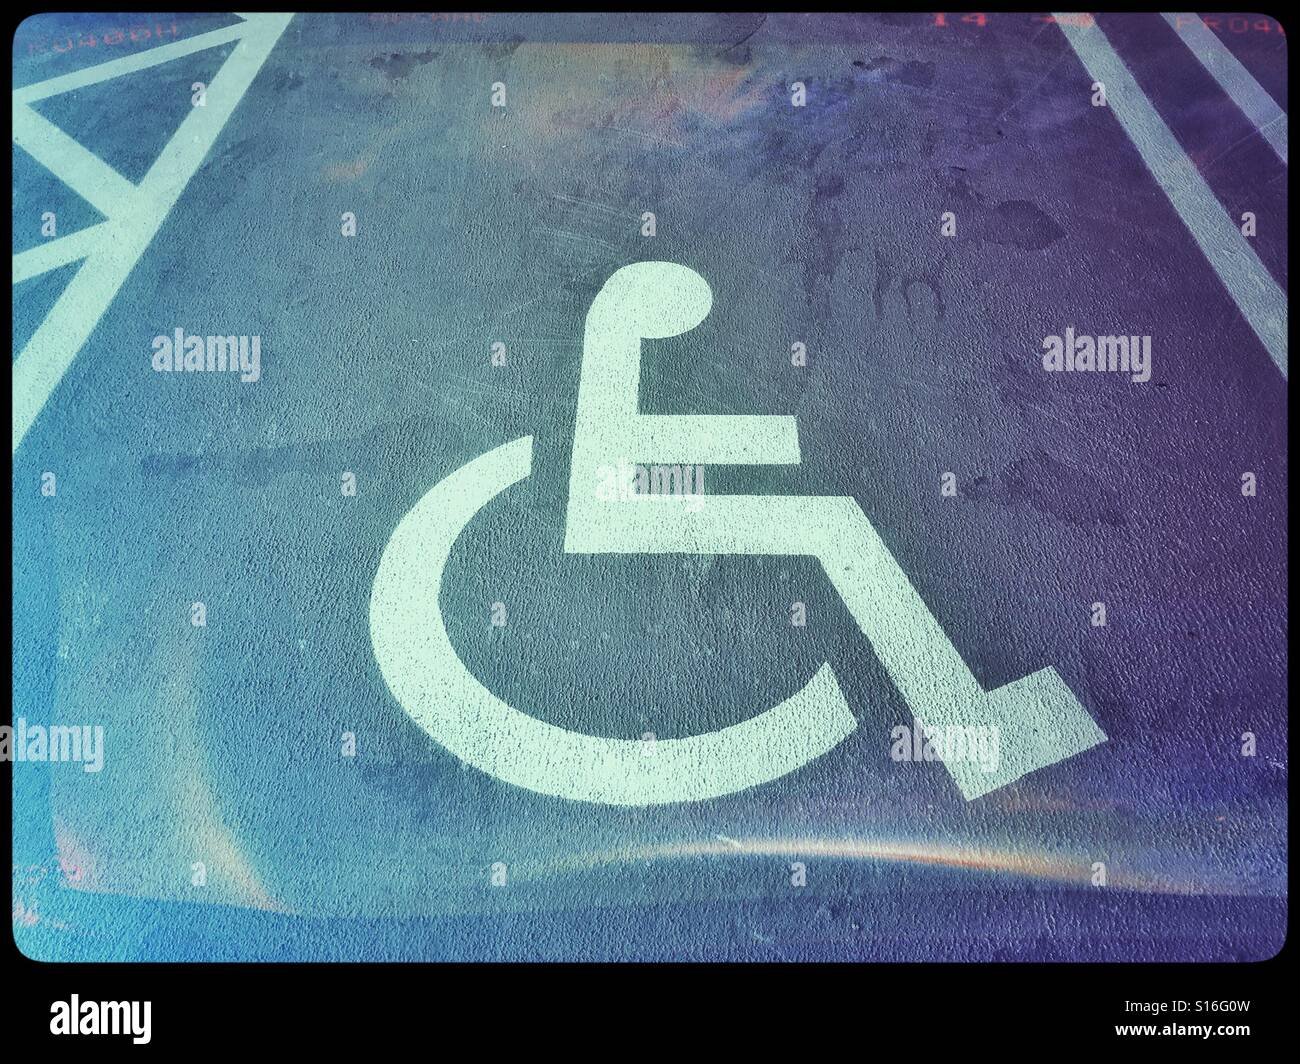 An analogue film effect image of a disabled persons car parking an analogue film effect image of a disabled persons car parking space the sign of a person sitting on a circle signifies a wheelchair user buycottarizona